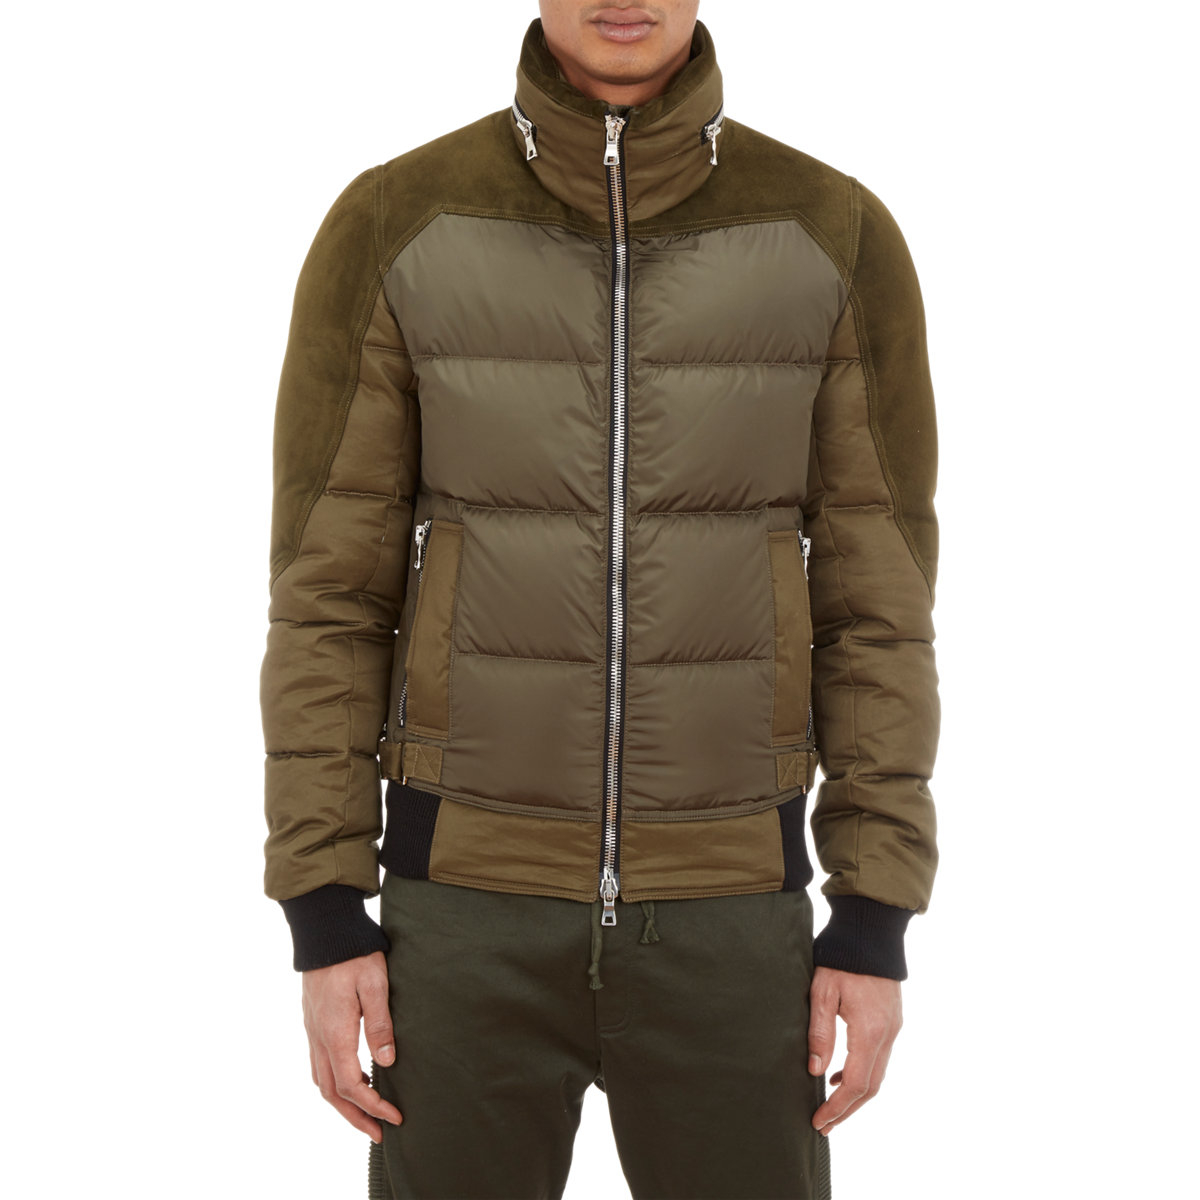 Balmain Suede Trim Down Puffer Jacket In Green For Men Lyst